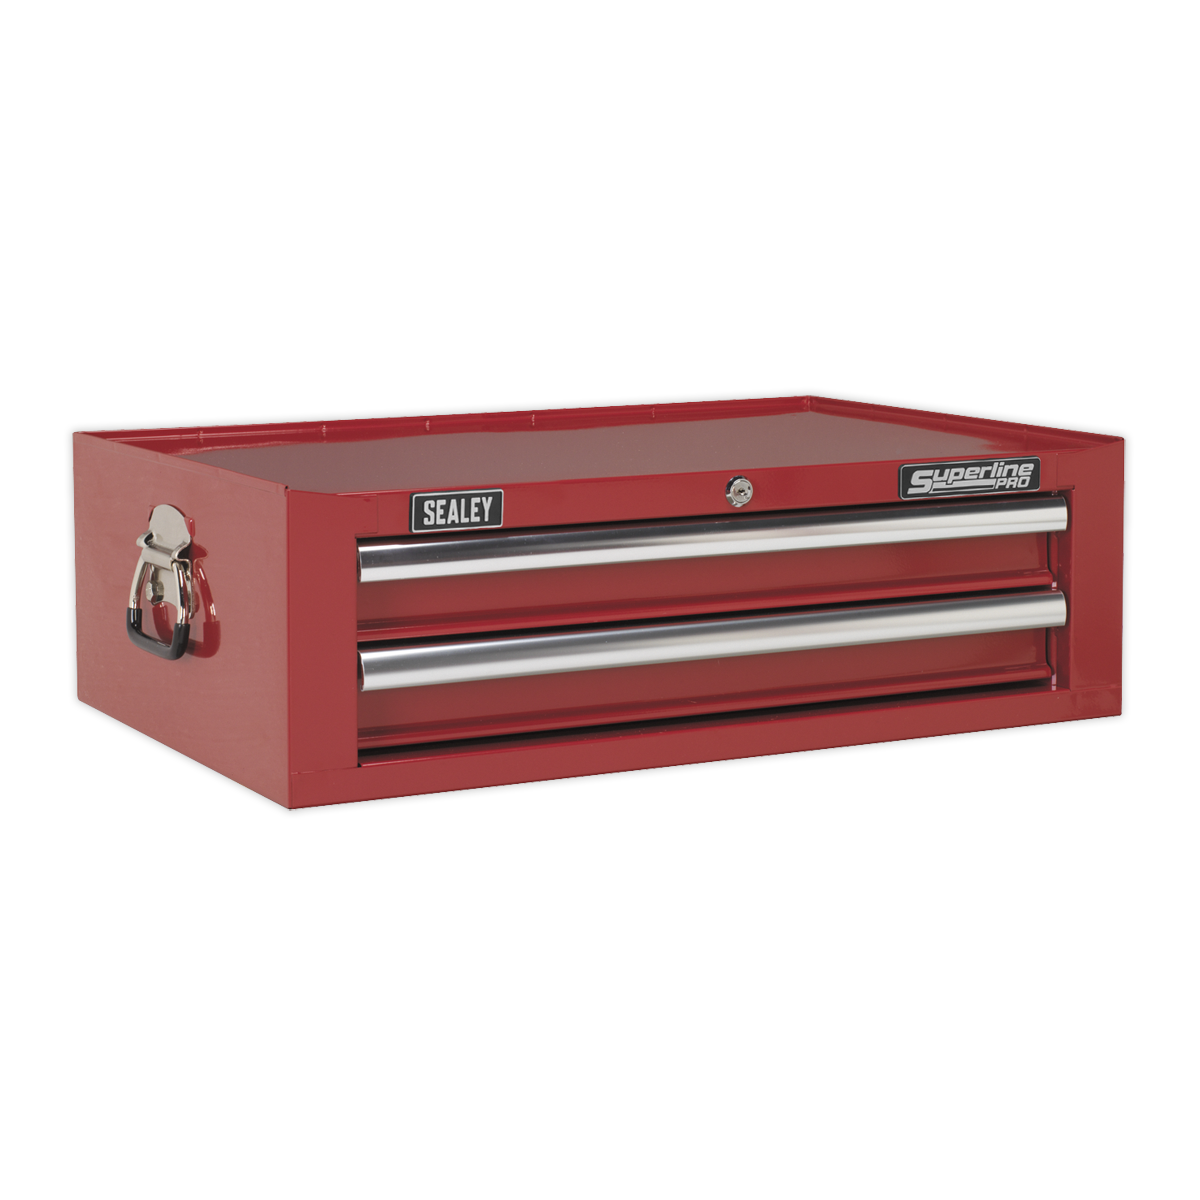 Mid-Box 2 Drawer with Ball Bearing Slides - rot   SEALEY AP26029T by Sealey   Ne